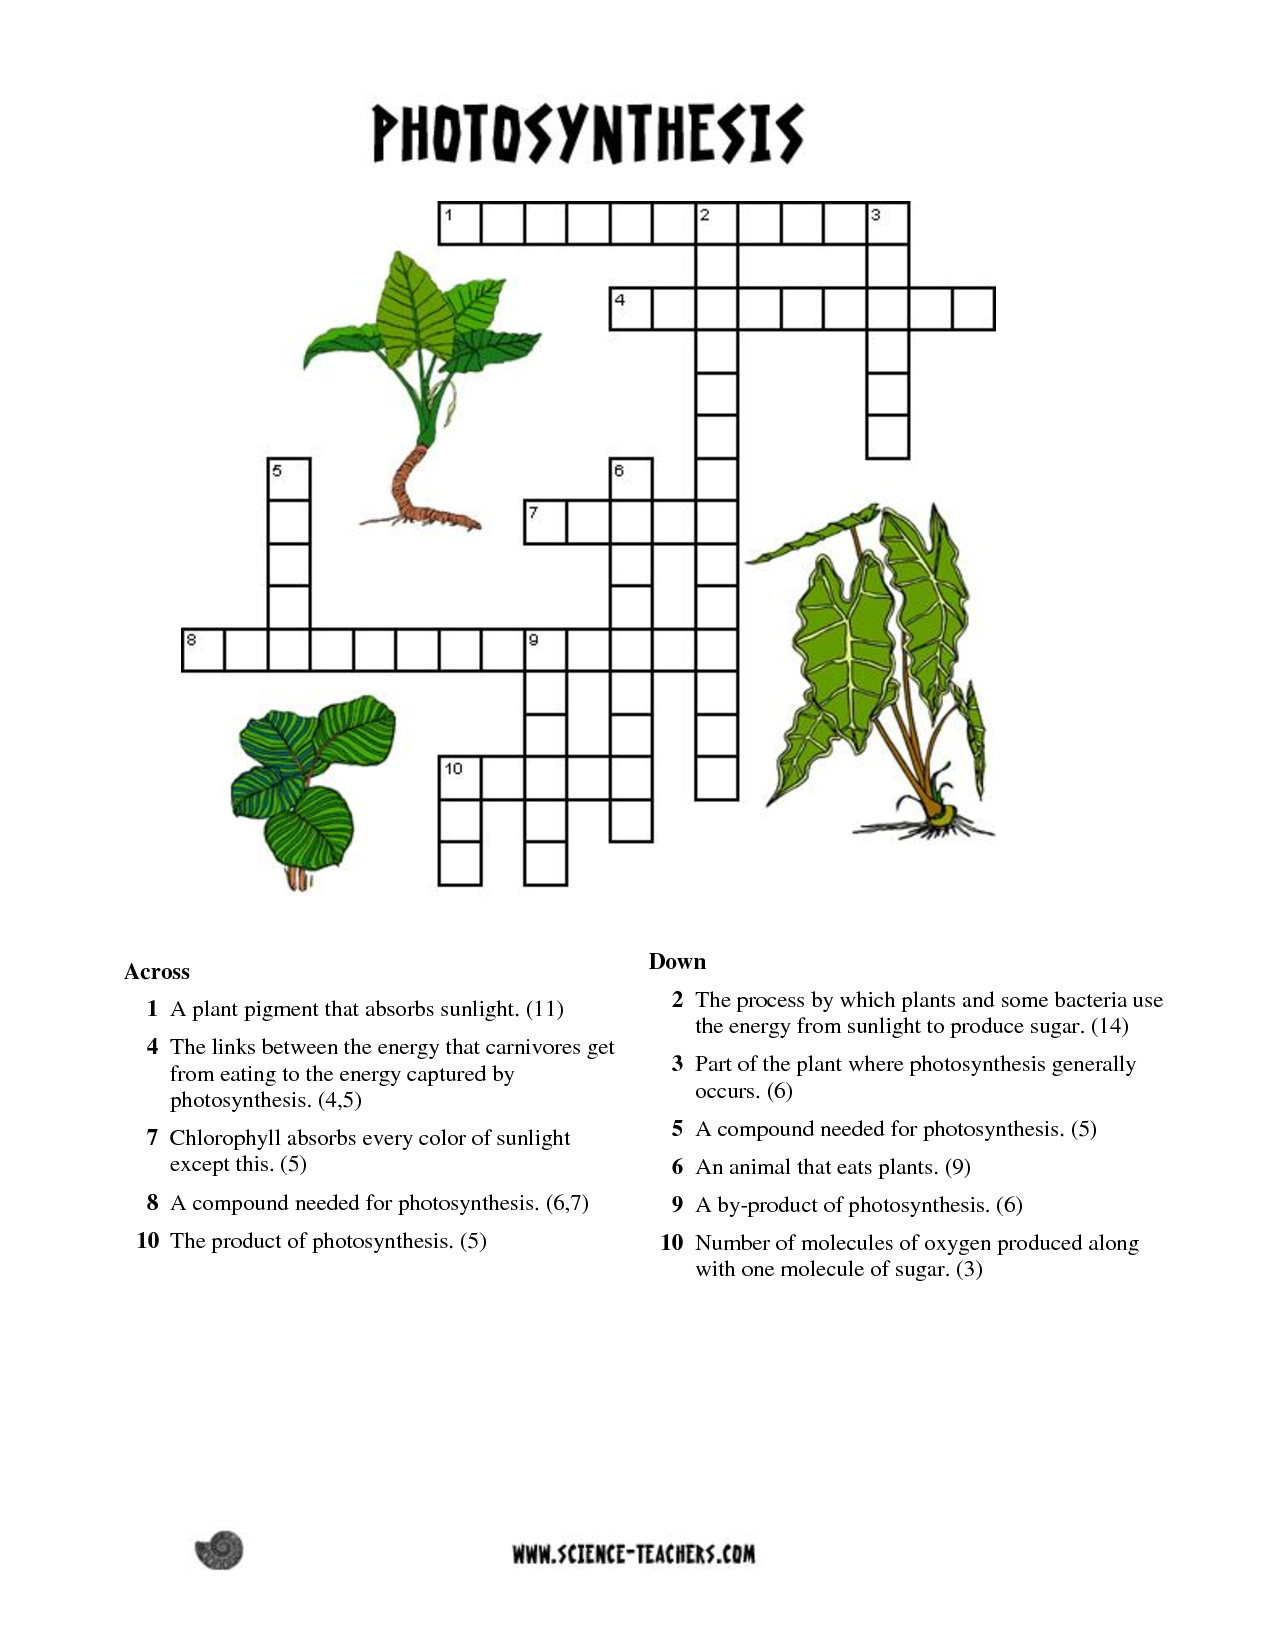 Worksheets Photosynthesis For Kids Worksheets printable photosynthesis crossword bing images because im a images